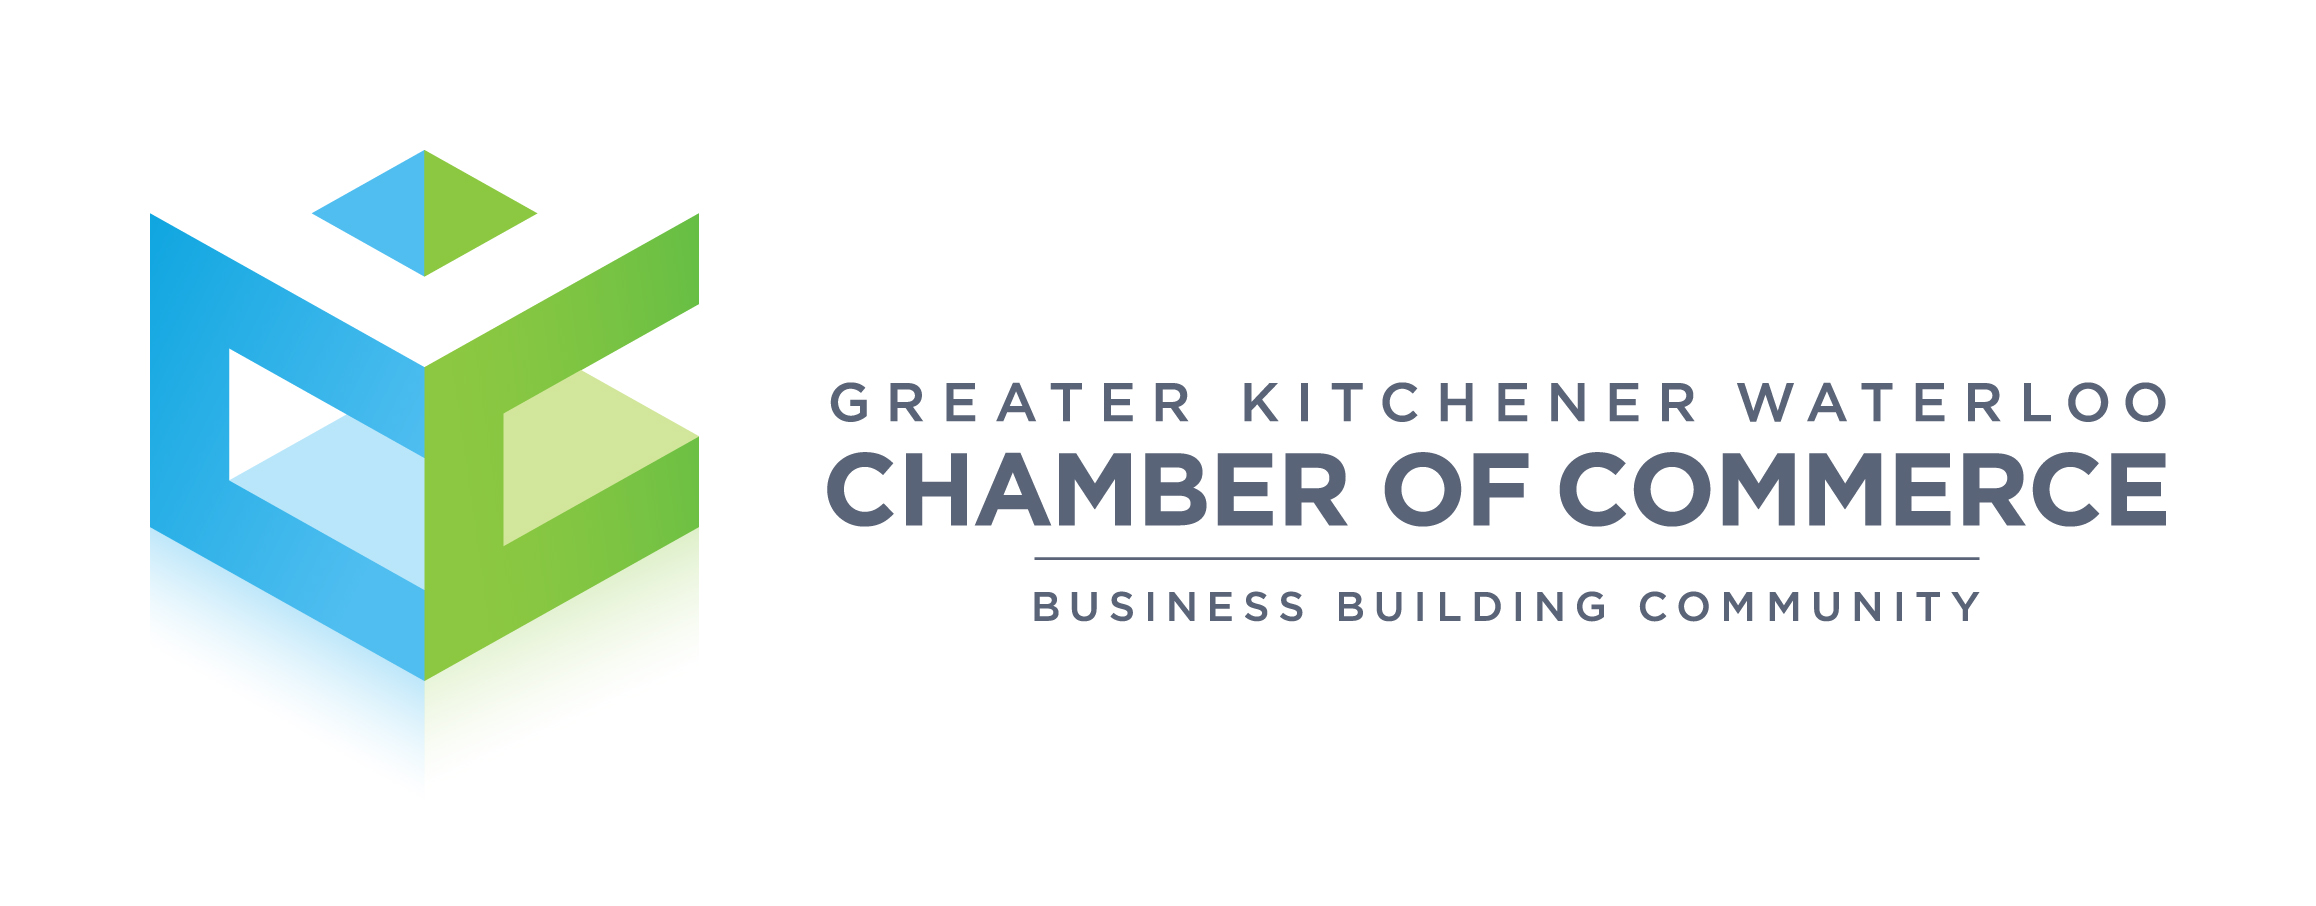 Chamber logo greater kitchener waterloo chamber of commerce for Chamber of commerce